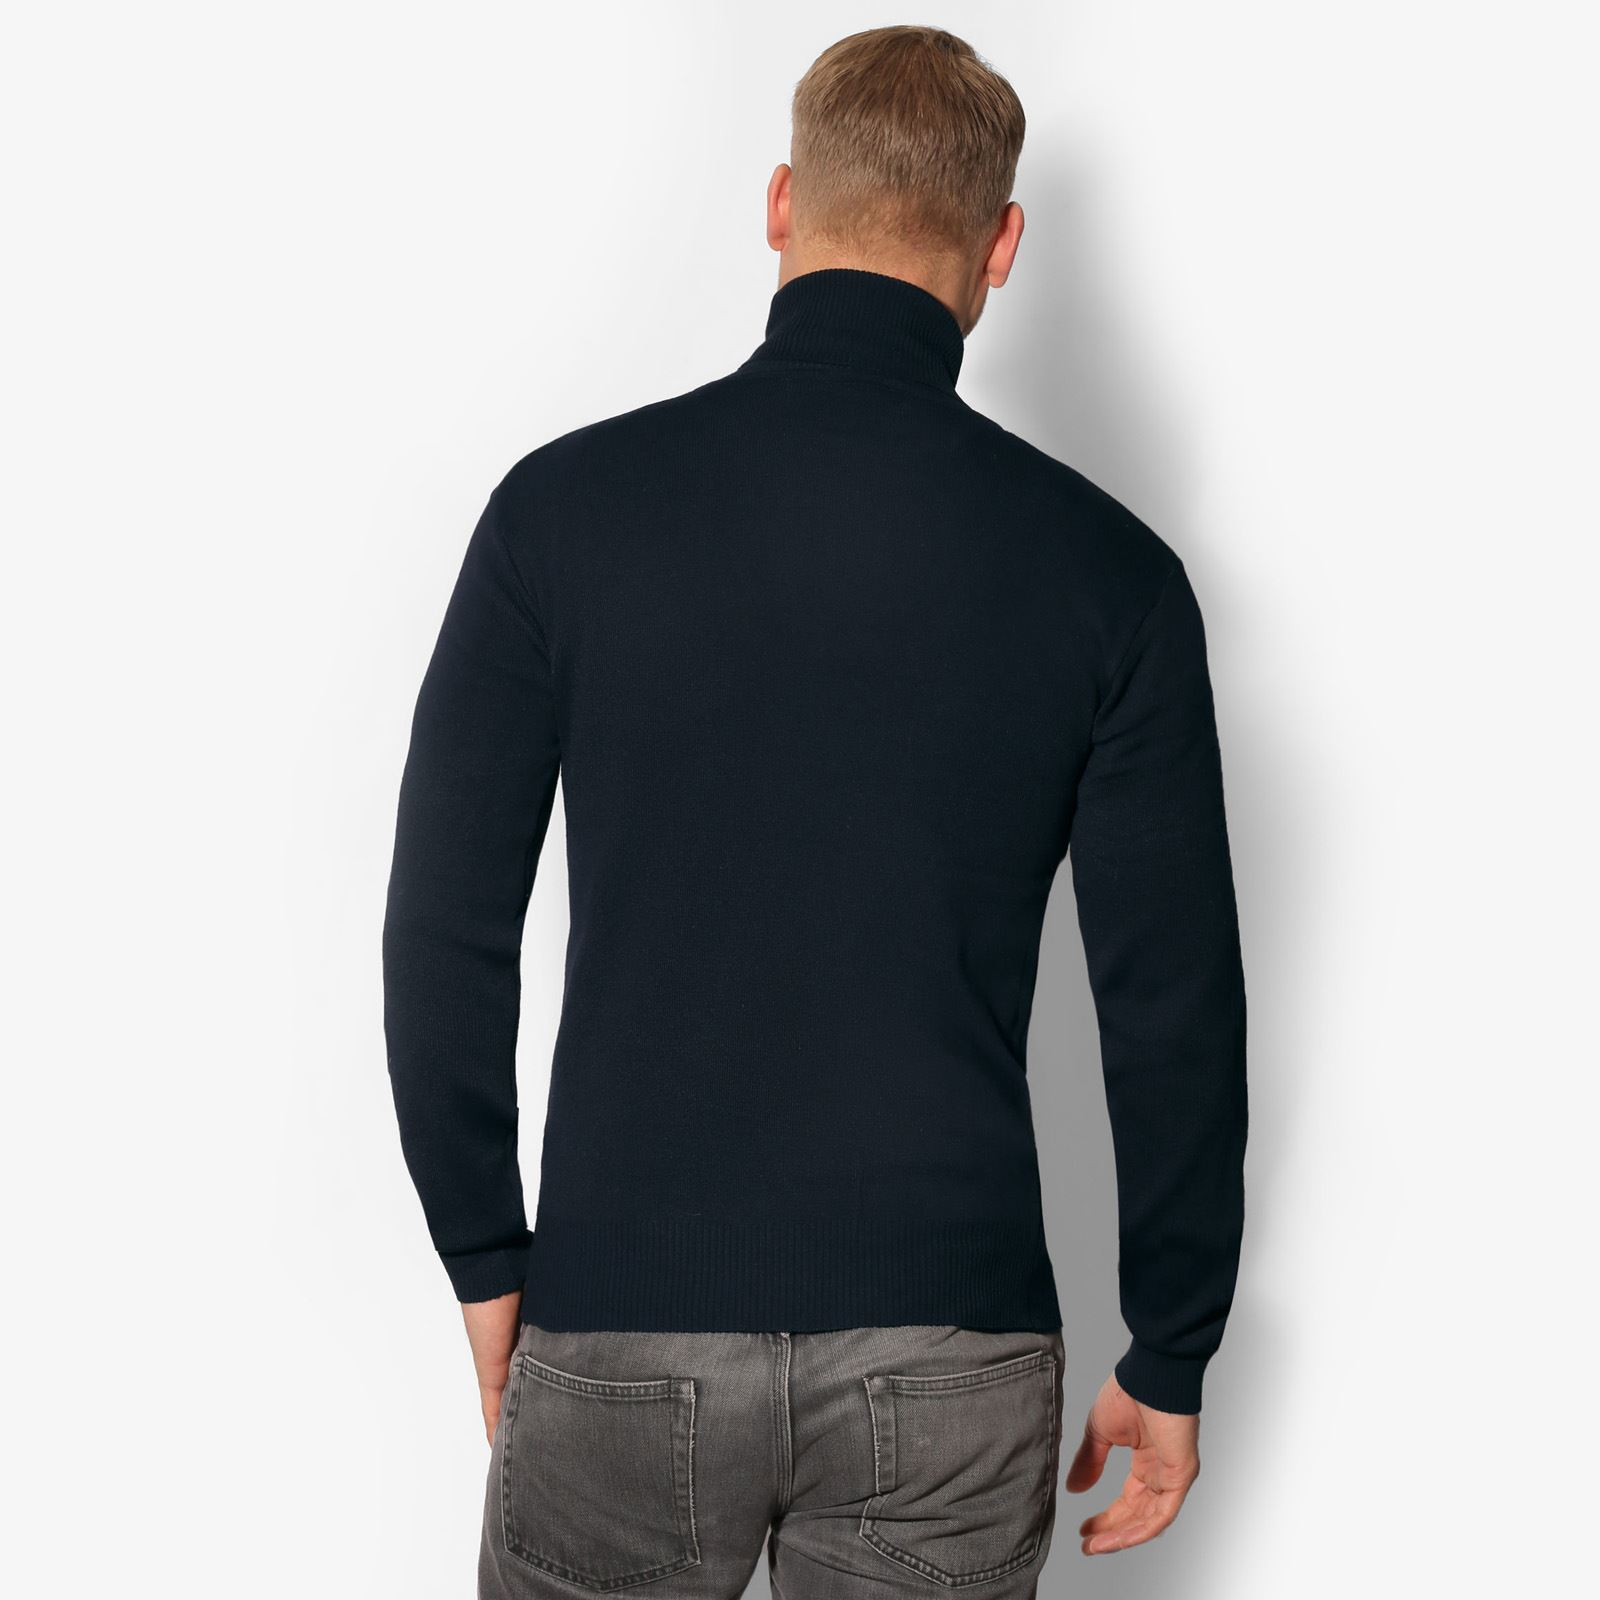 Mens-Turtle-Neck-Roll-Jumper-Sweater-Cotton-Knitwear-Winter-Pullover-Polo-Top thumbnail 17